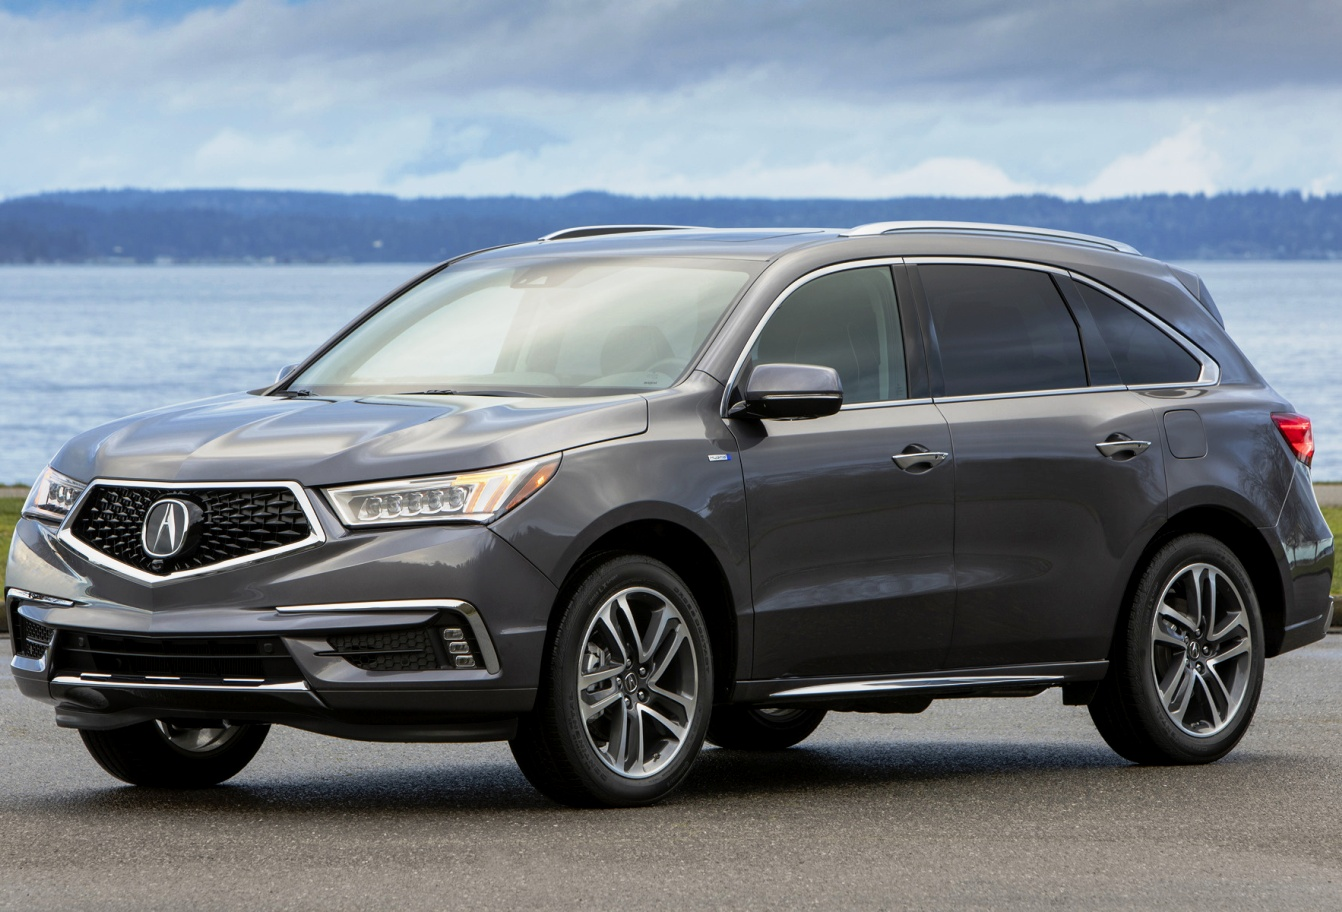 acura mdx sport hybrid 2018 essais routiers actualit s. Black Bedroom Furniture Sets. Home Design Ideas